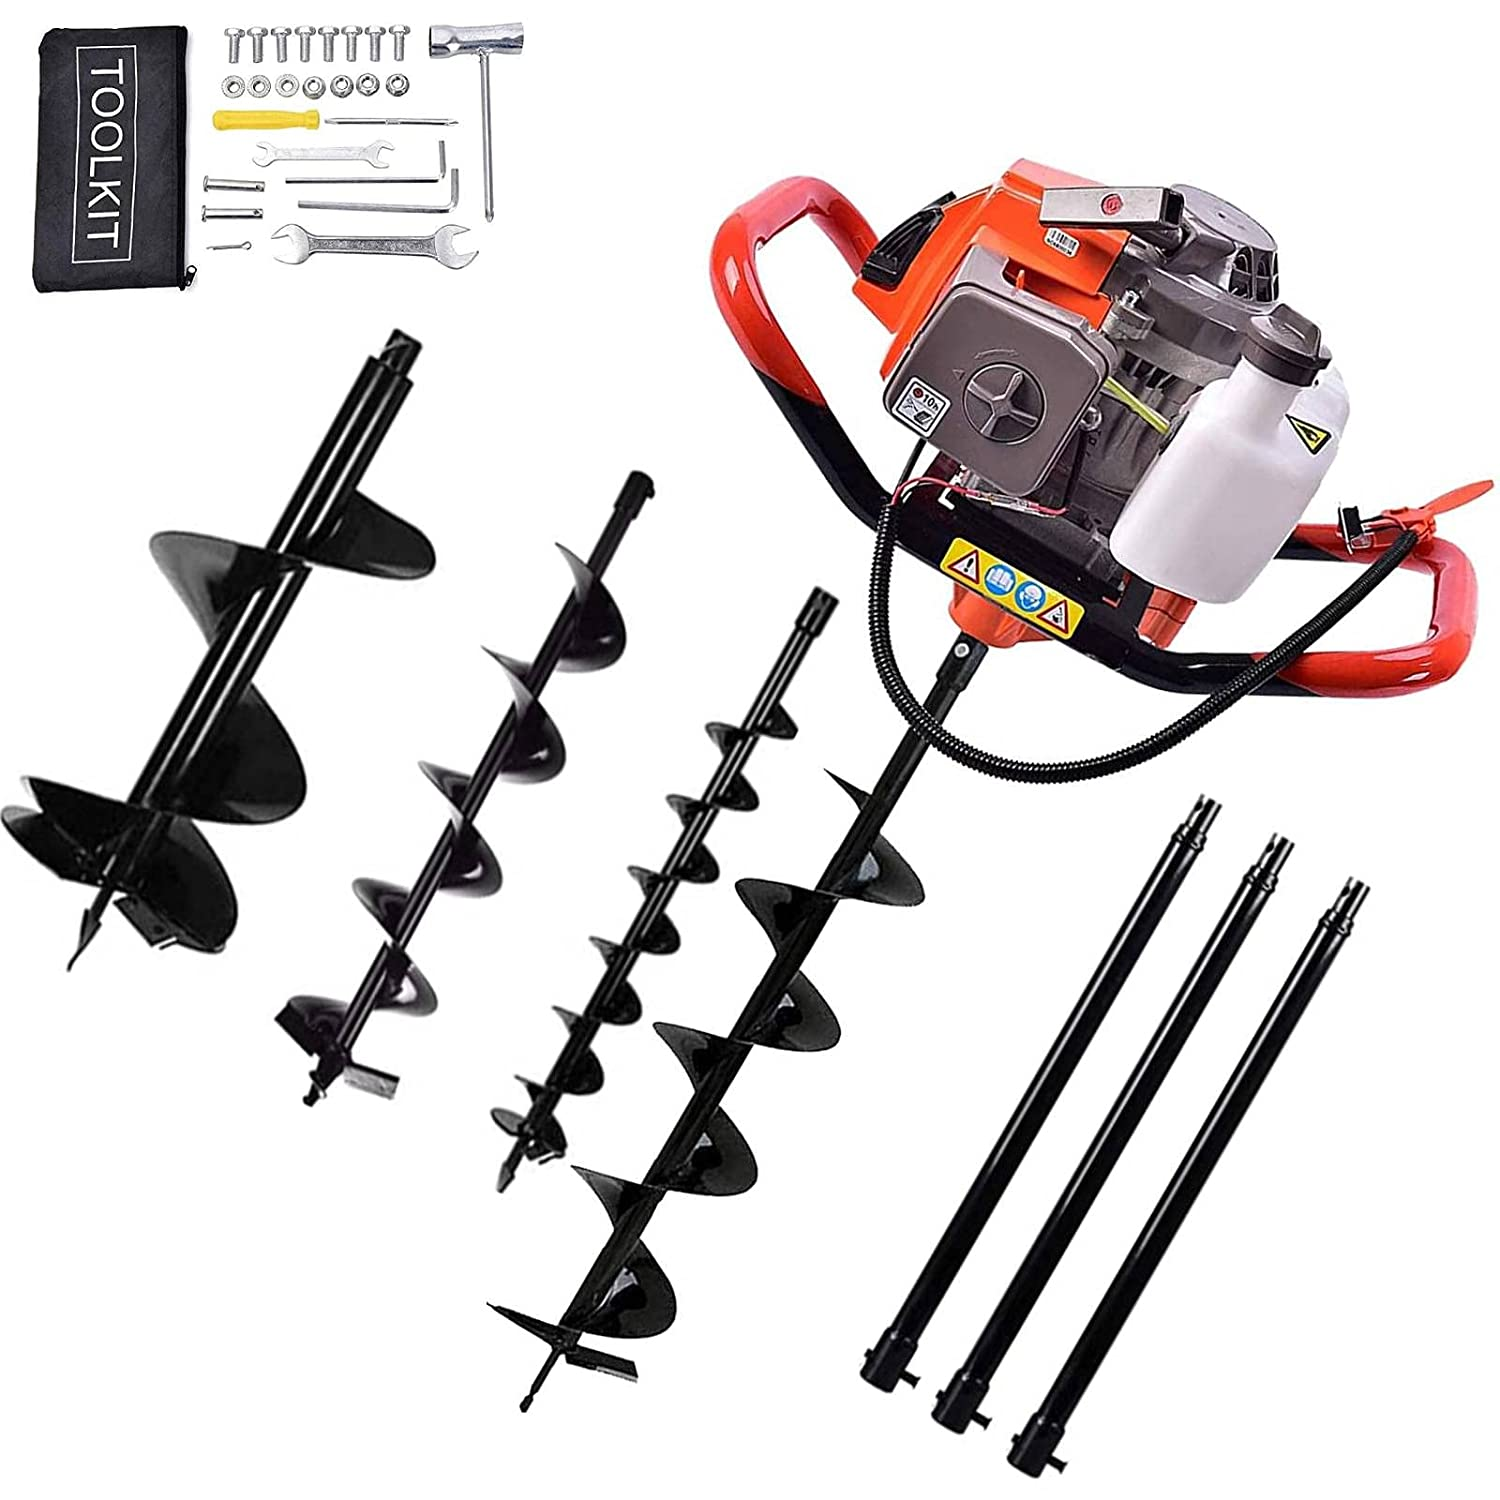 72CC 4HP Stroke Max 79% OFF Gas Post Digge Ultra-Cheap Deals Digger Powered Hole